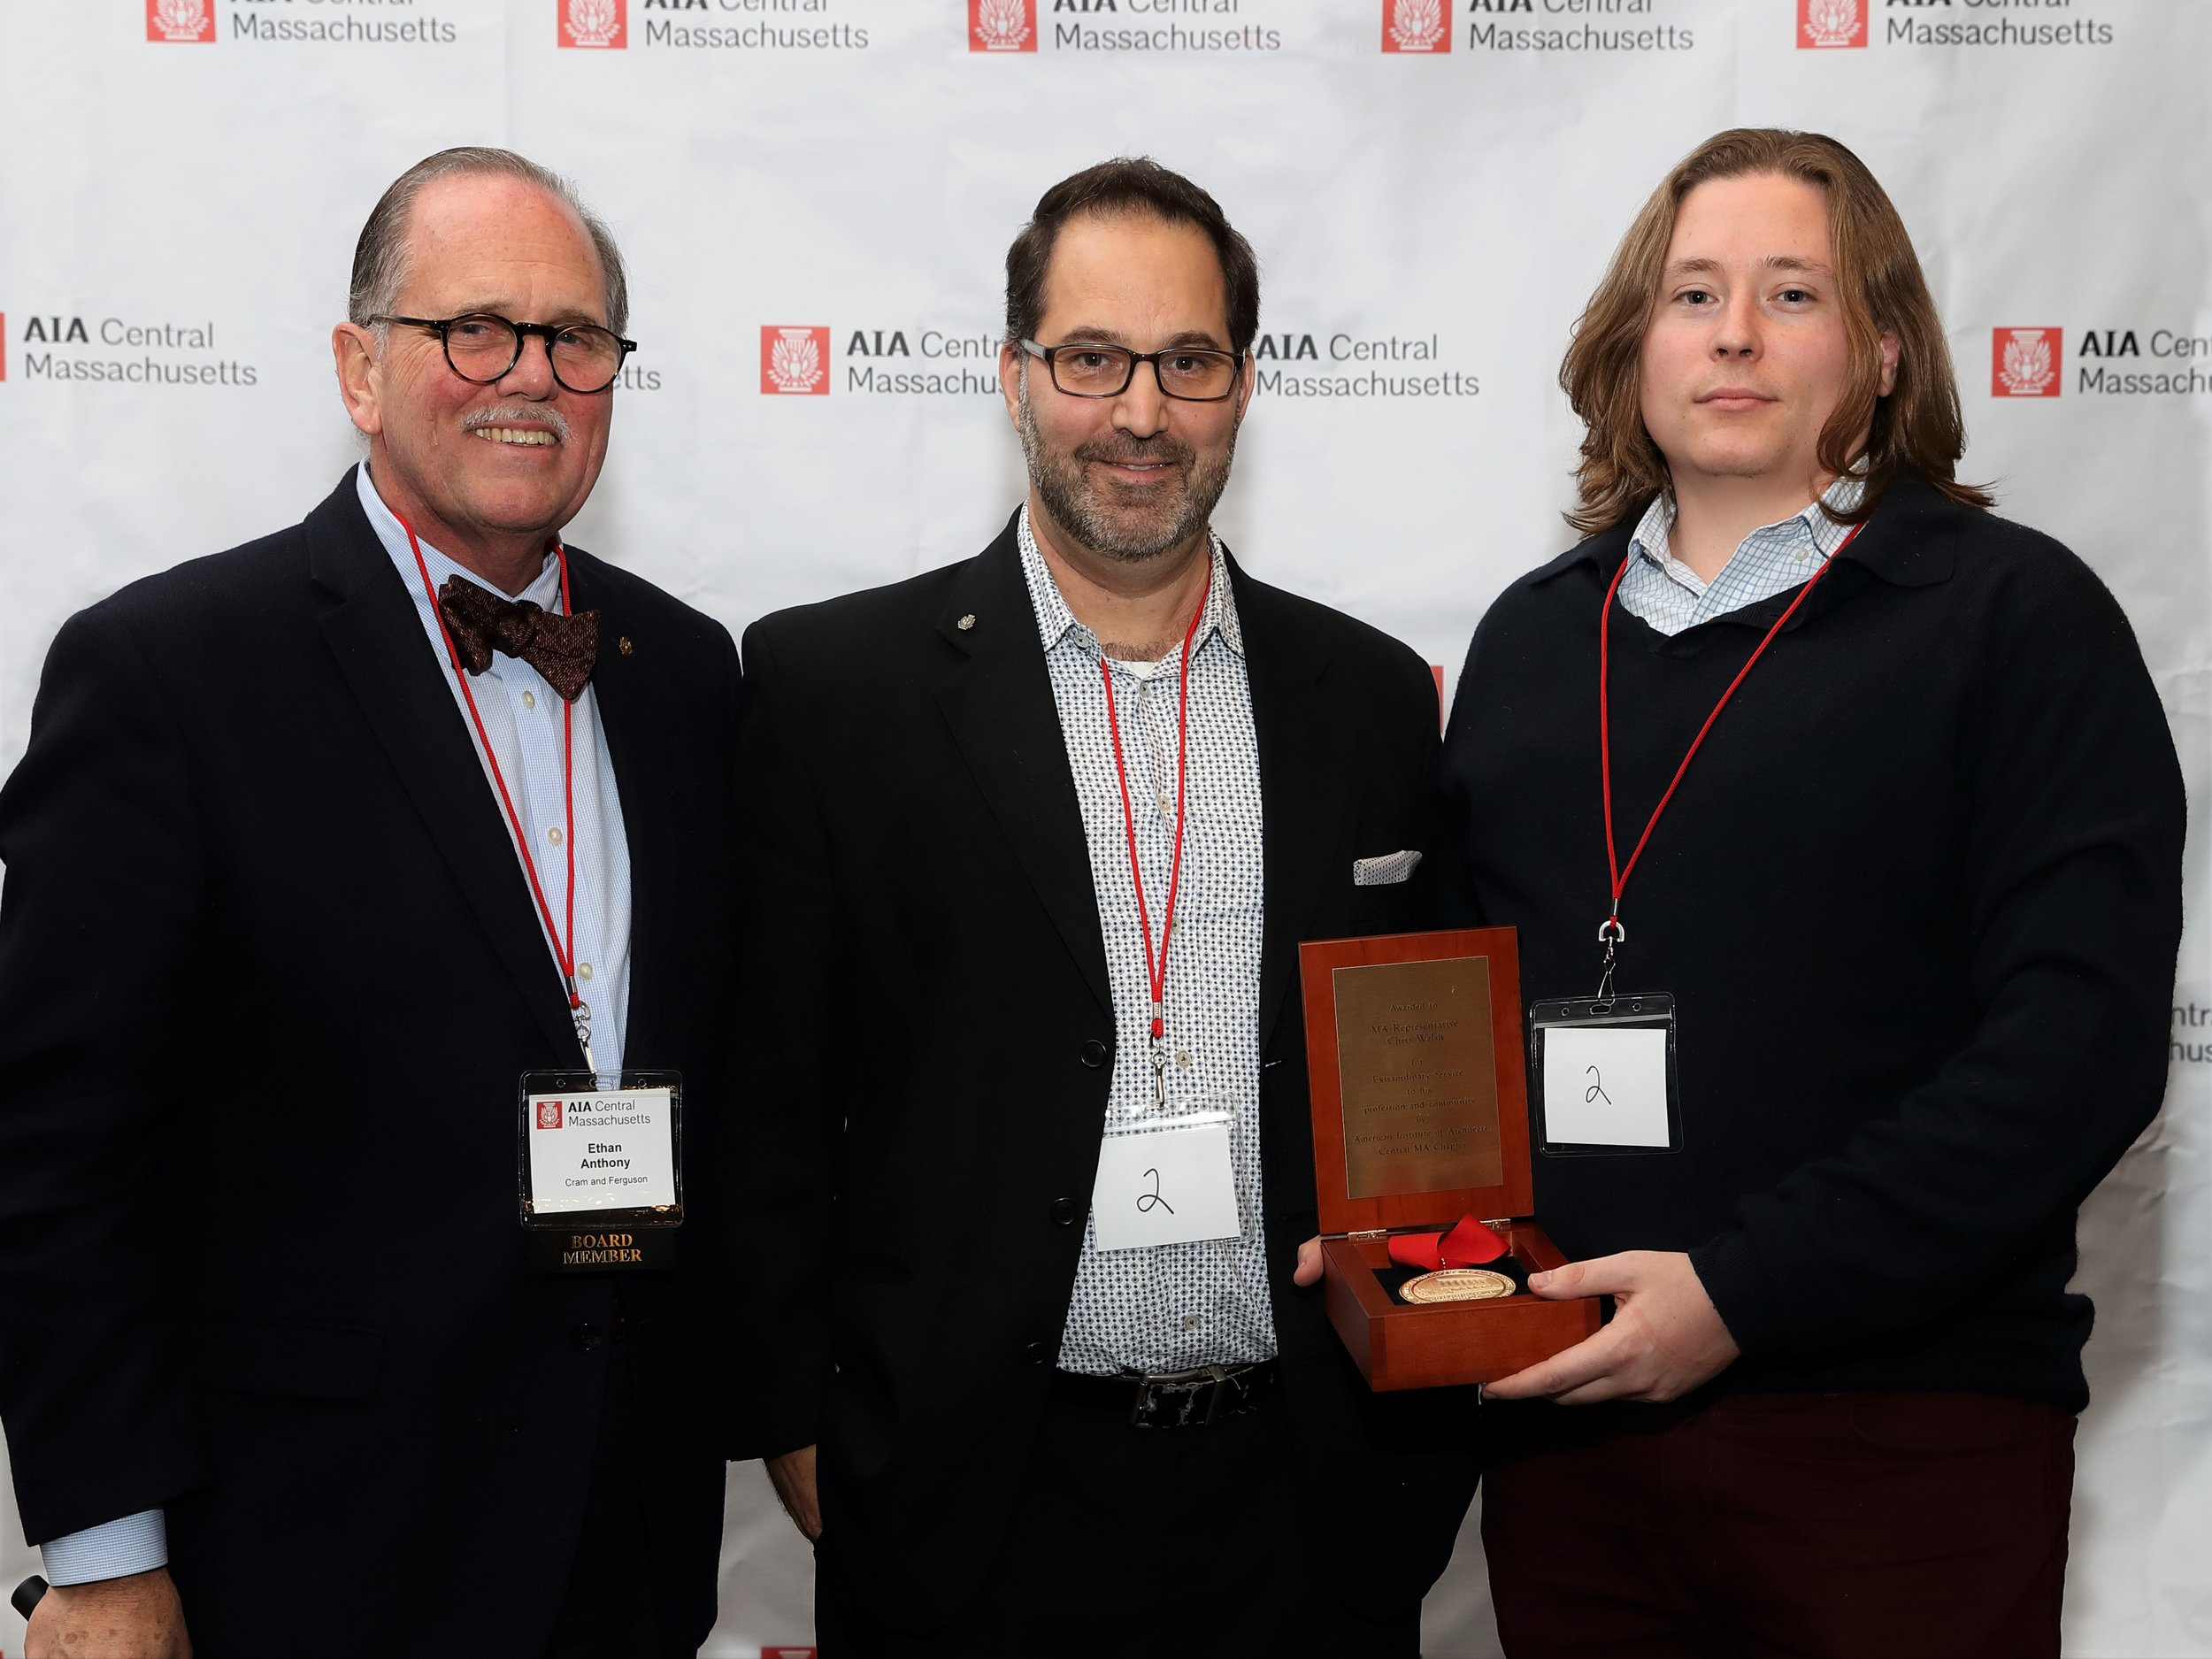 The first AIACM Presidential Medallion was presented to Jamie Walsh in honor of his late father Massachusetts Representative Chris Walsh. Pictured from left: Ethan Anthony, John Nunneri and Jamie Walsh.